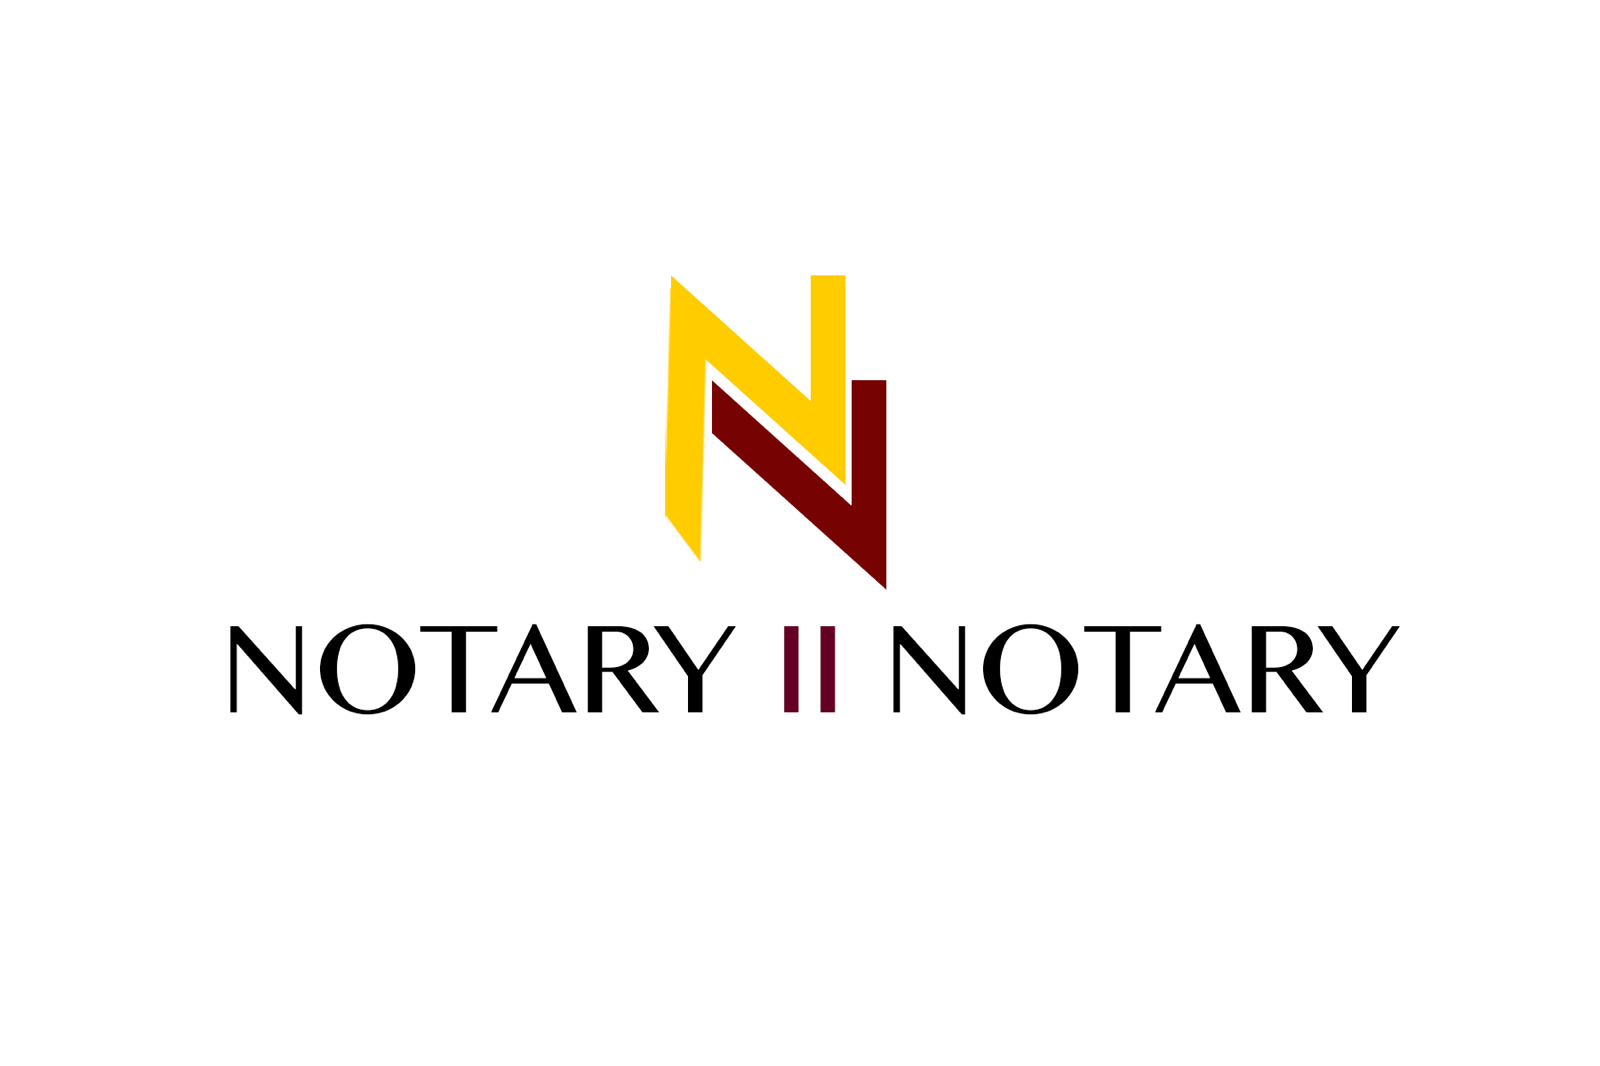 BUILDING A SUCCESSFUL NOTARY BUSINESS (SIGNING AGENT)